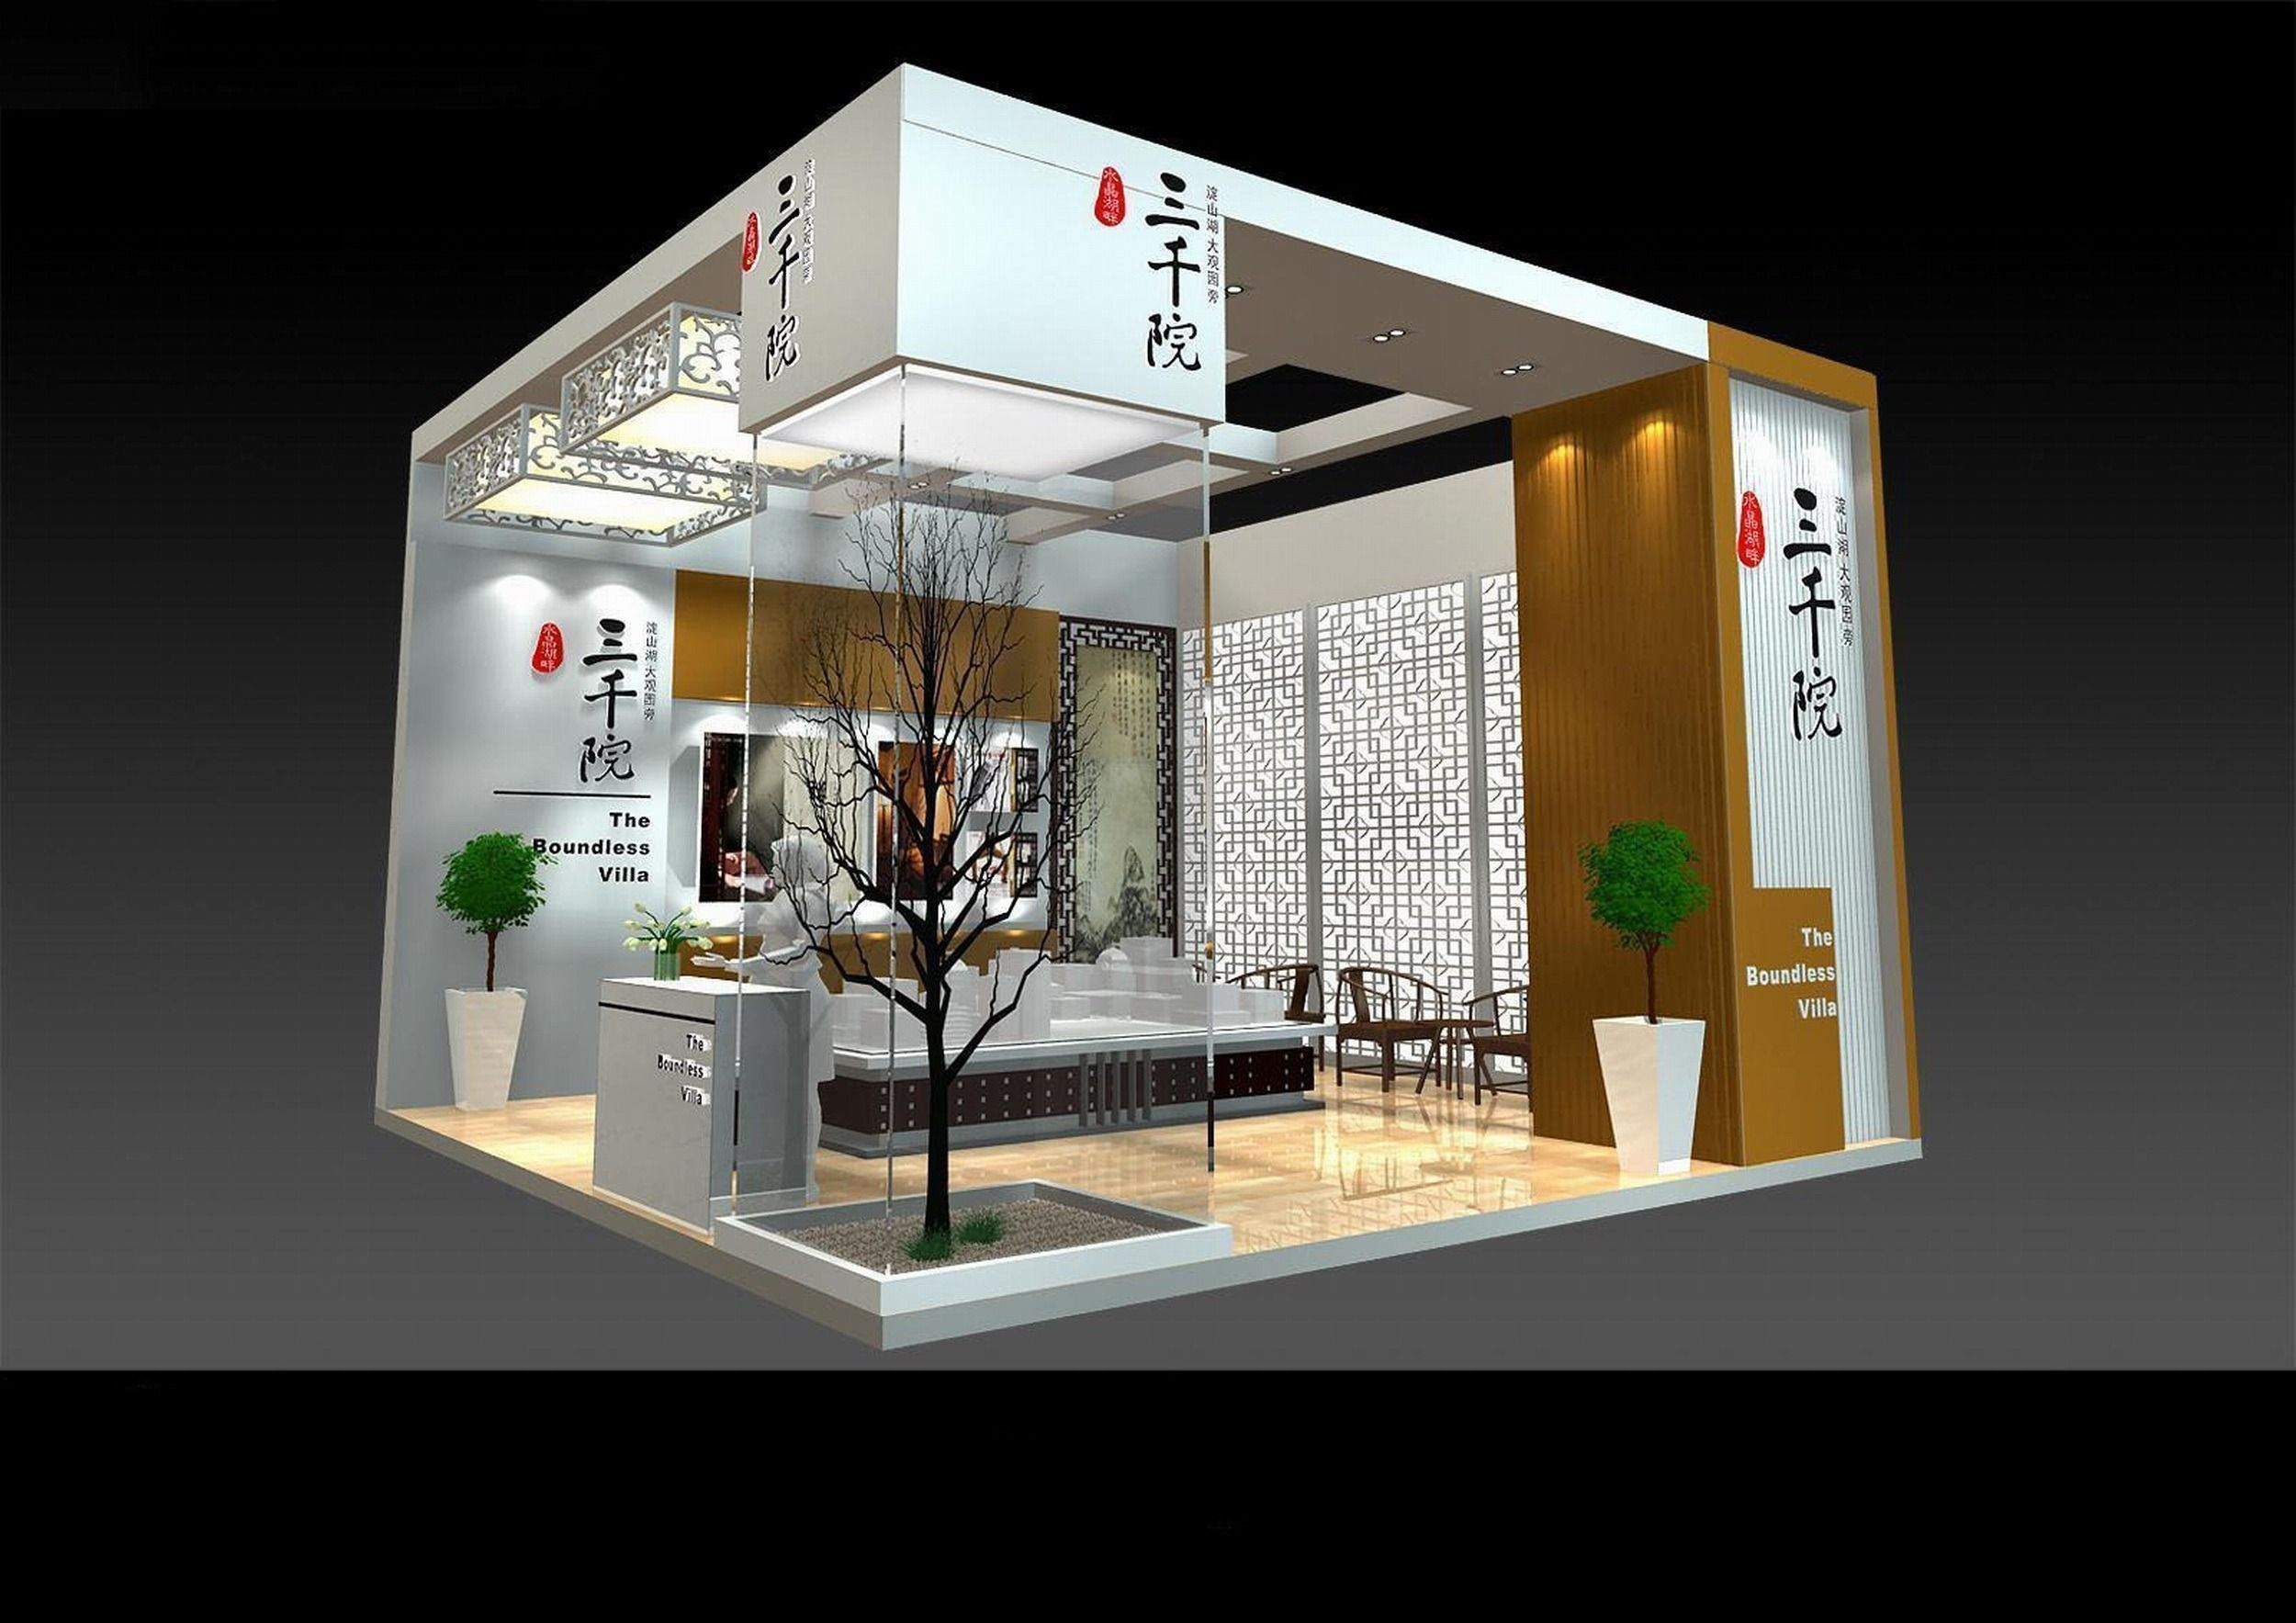 Exhibition area 6x6 3dmax2009 2504 3d model max for 6x6 room design